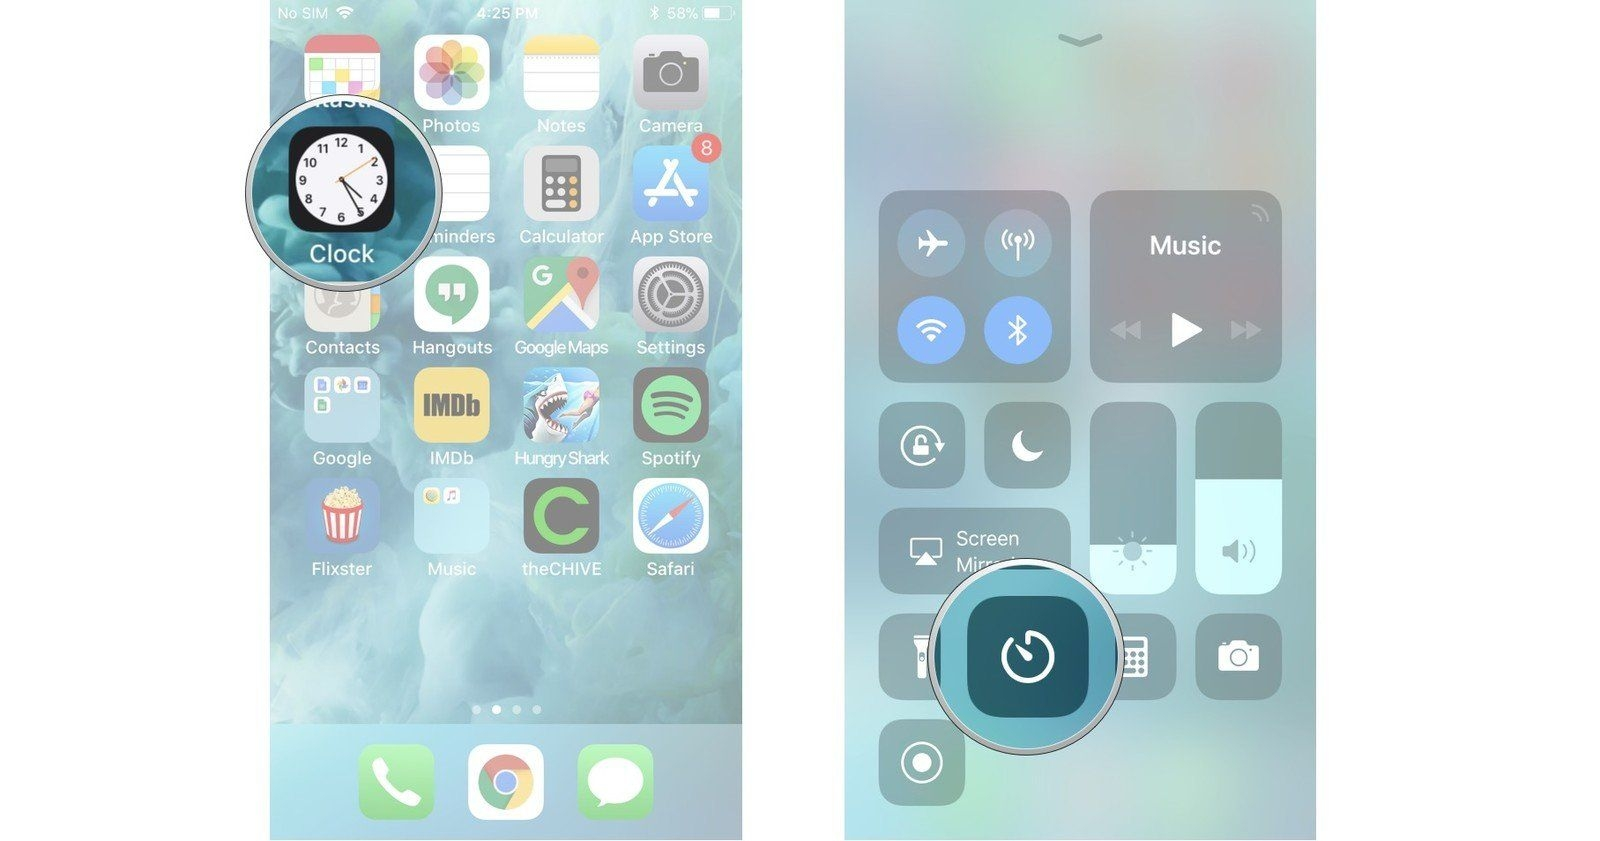 How To Use The Timer In The Clock App On Iphone And Ipad   Imore